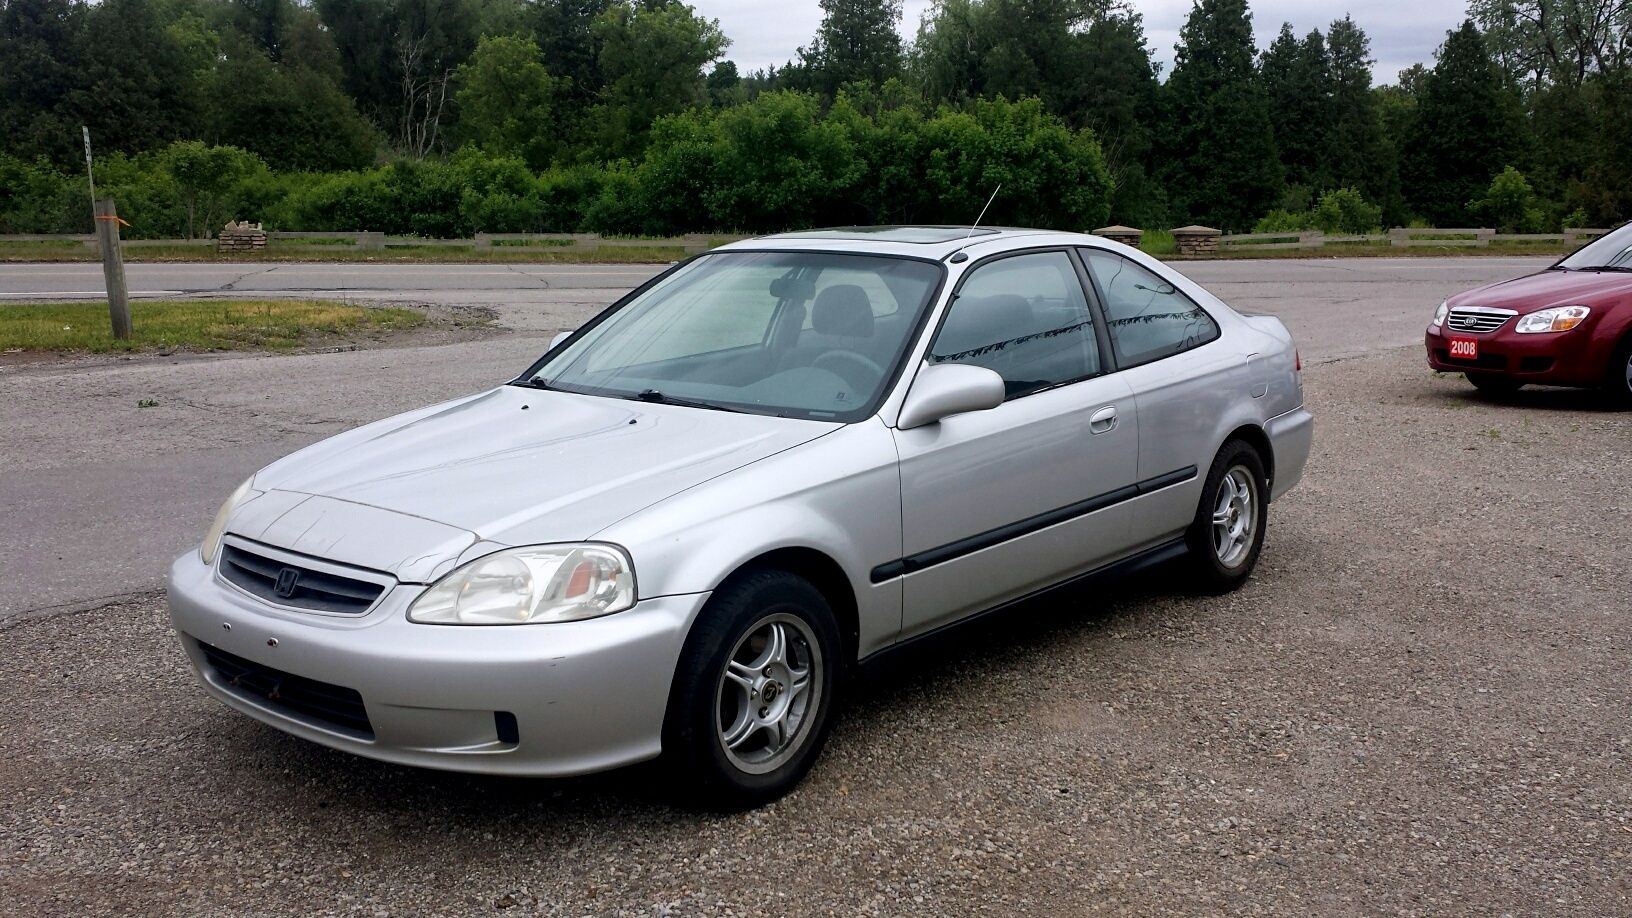 Honda civic si 2000 for sale